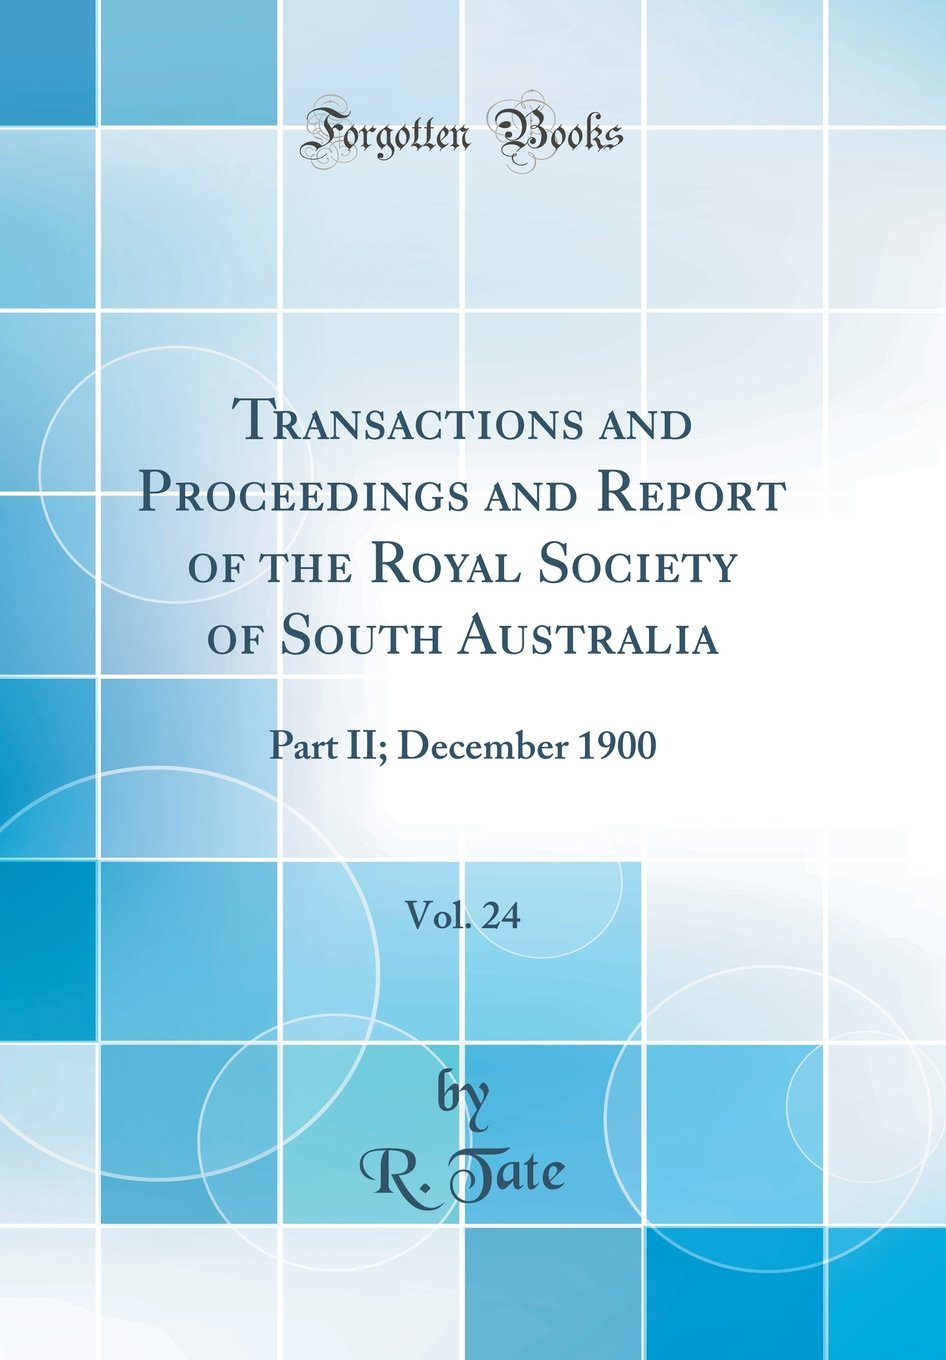 Download Transactions and Proceedings and Report of the Royal Society of South Australia, Vol. 24: Part II; December 1900 (Classic Reprint) PDF